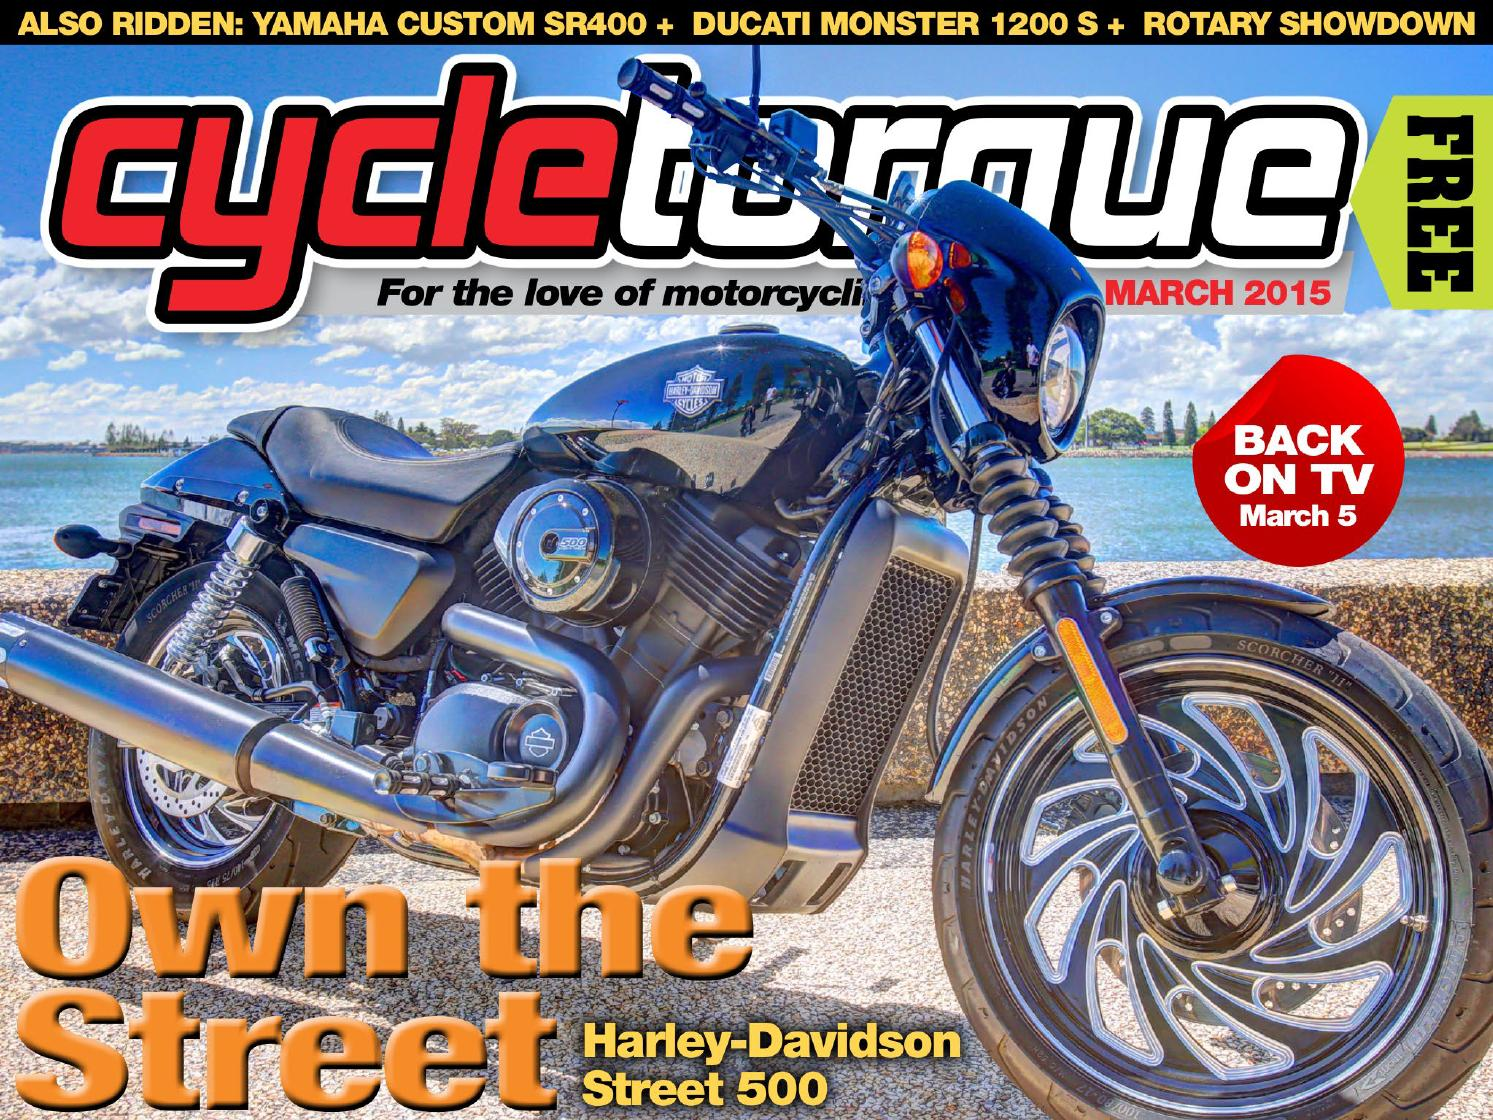 Cycle torque march 2015 by cycle torque issuu